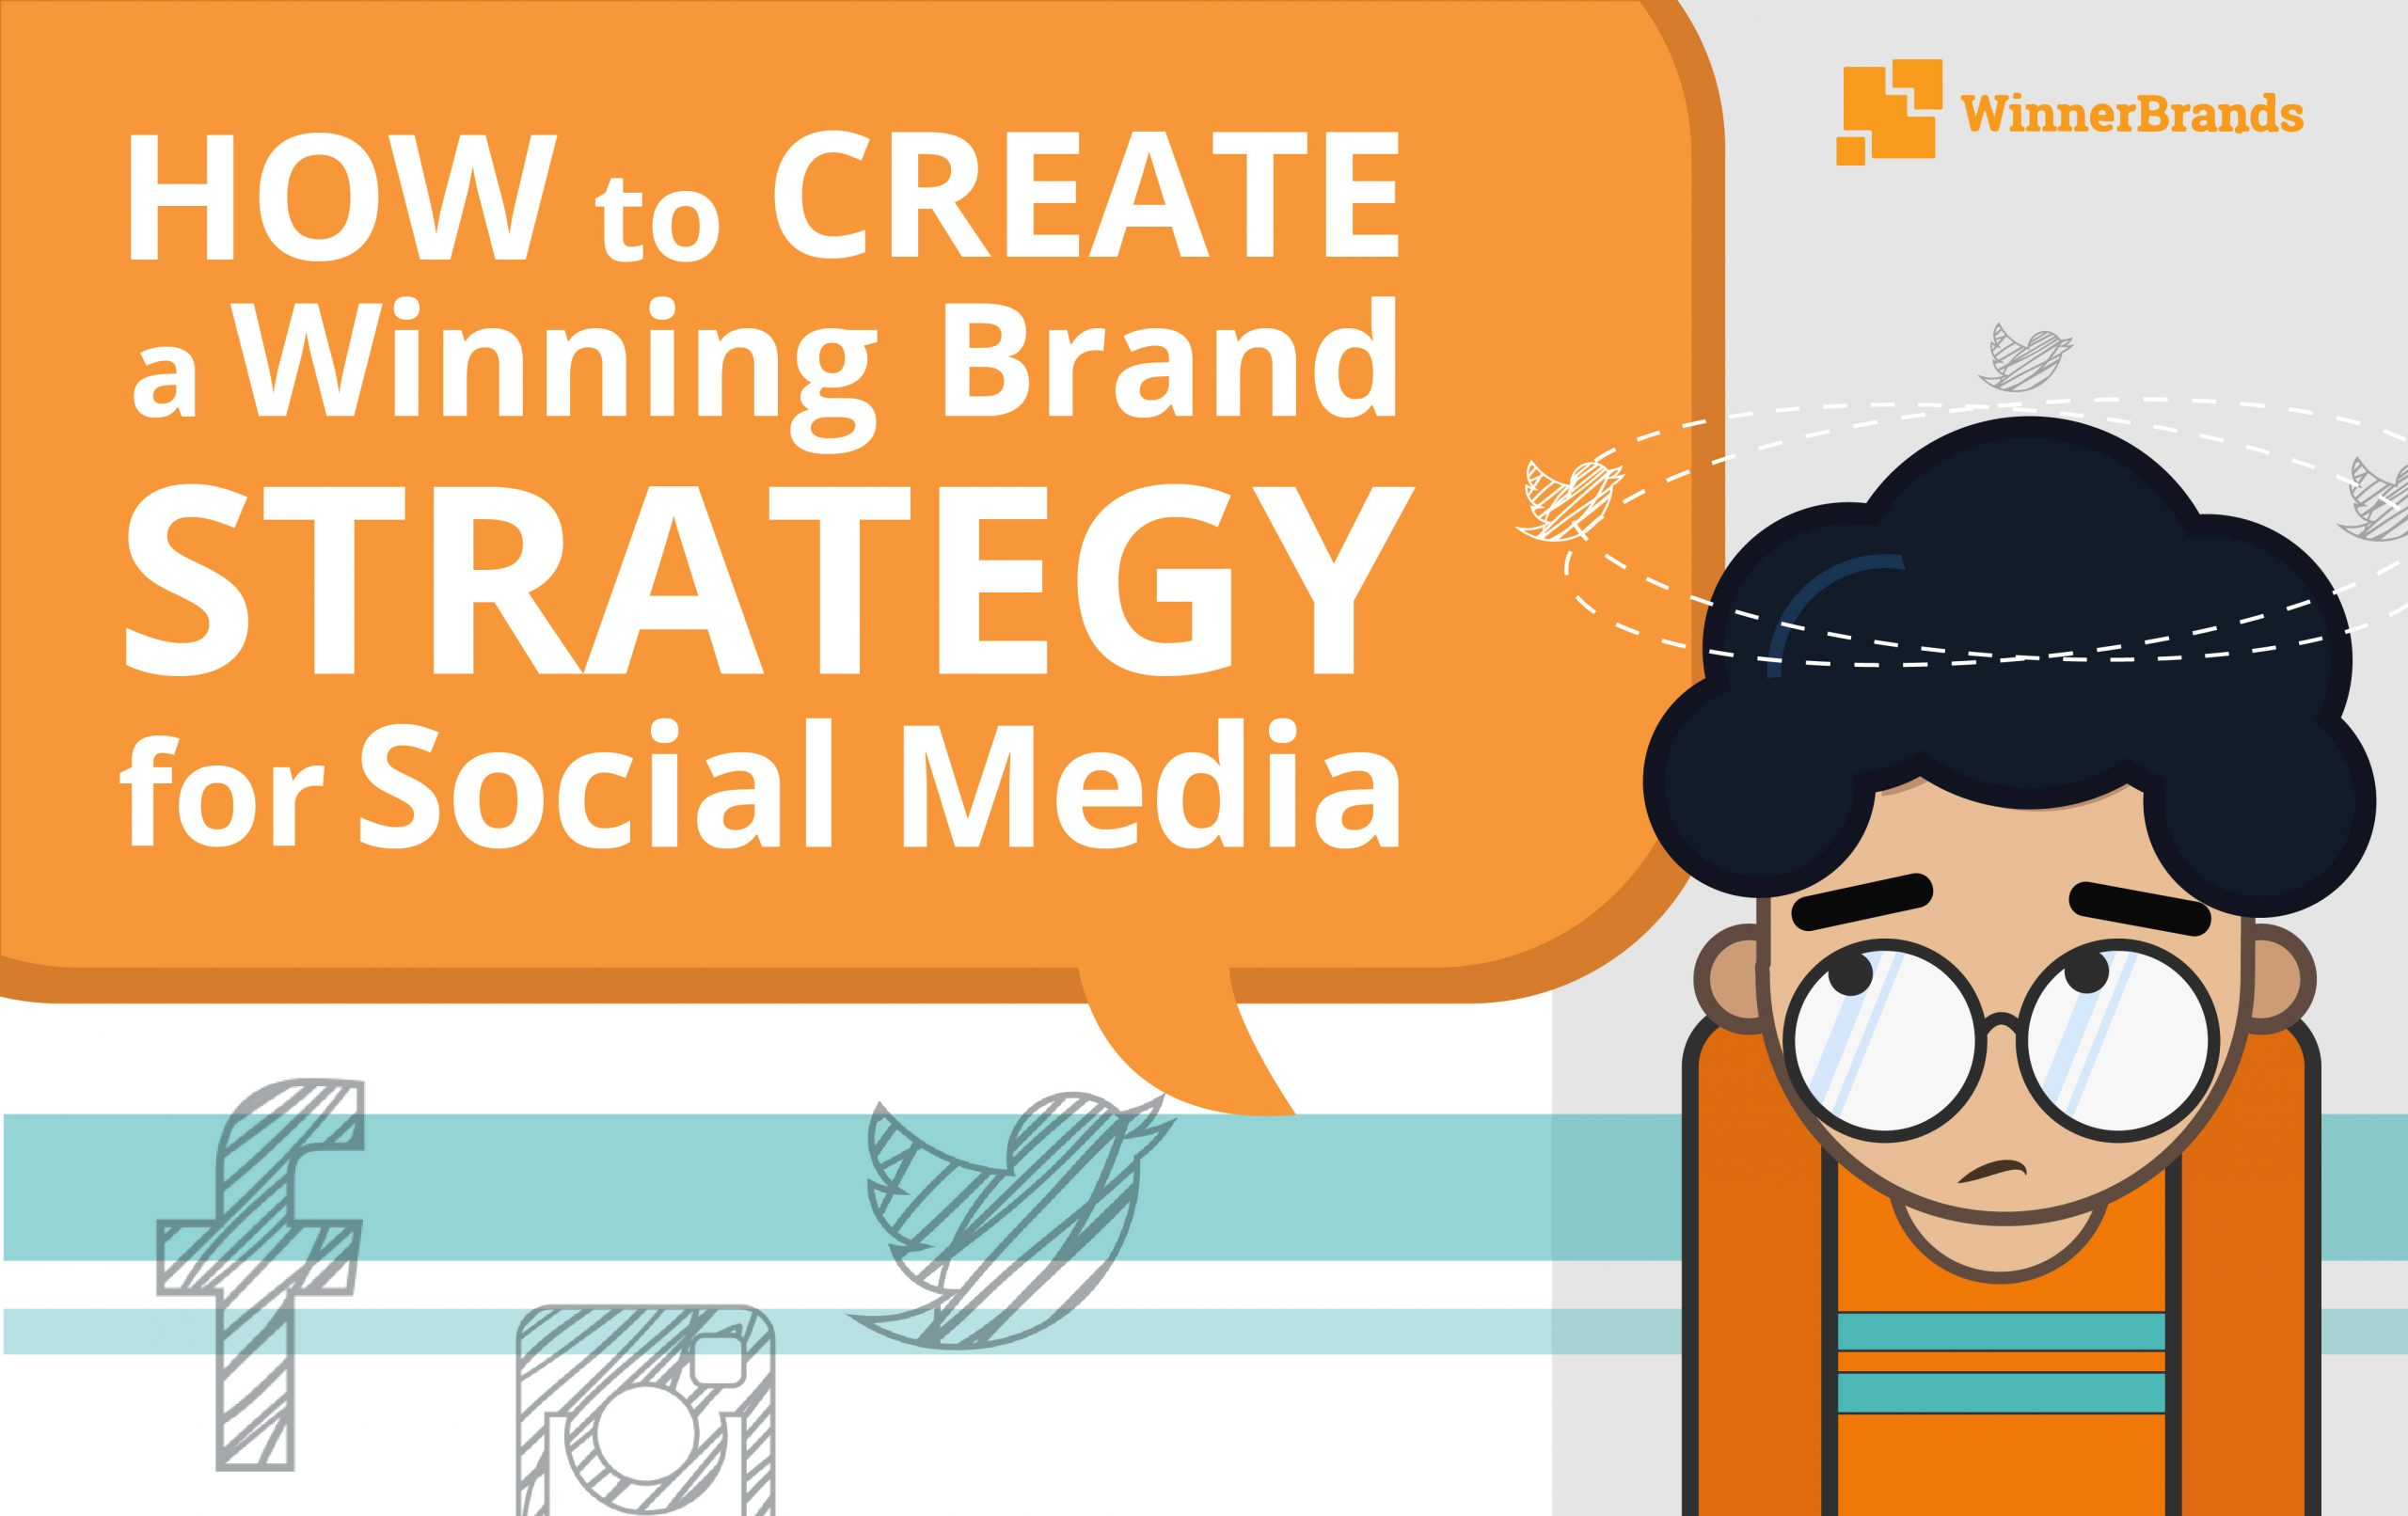 HOW TO CREATE A WINNING BRAND STRATEGY FOR SOCIAL MEDIA